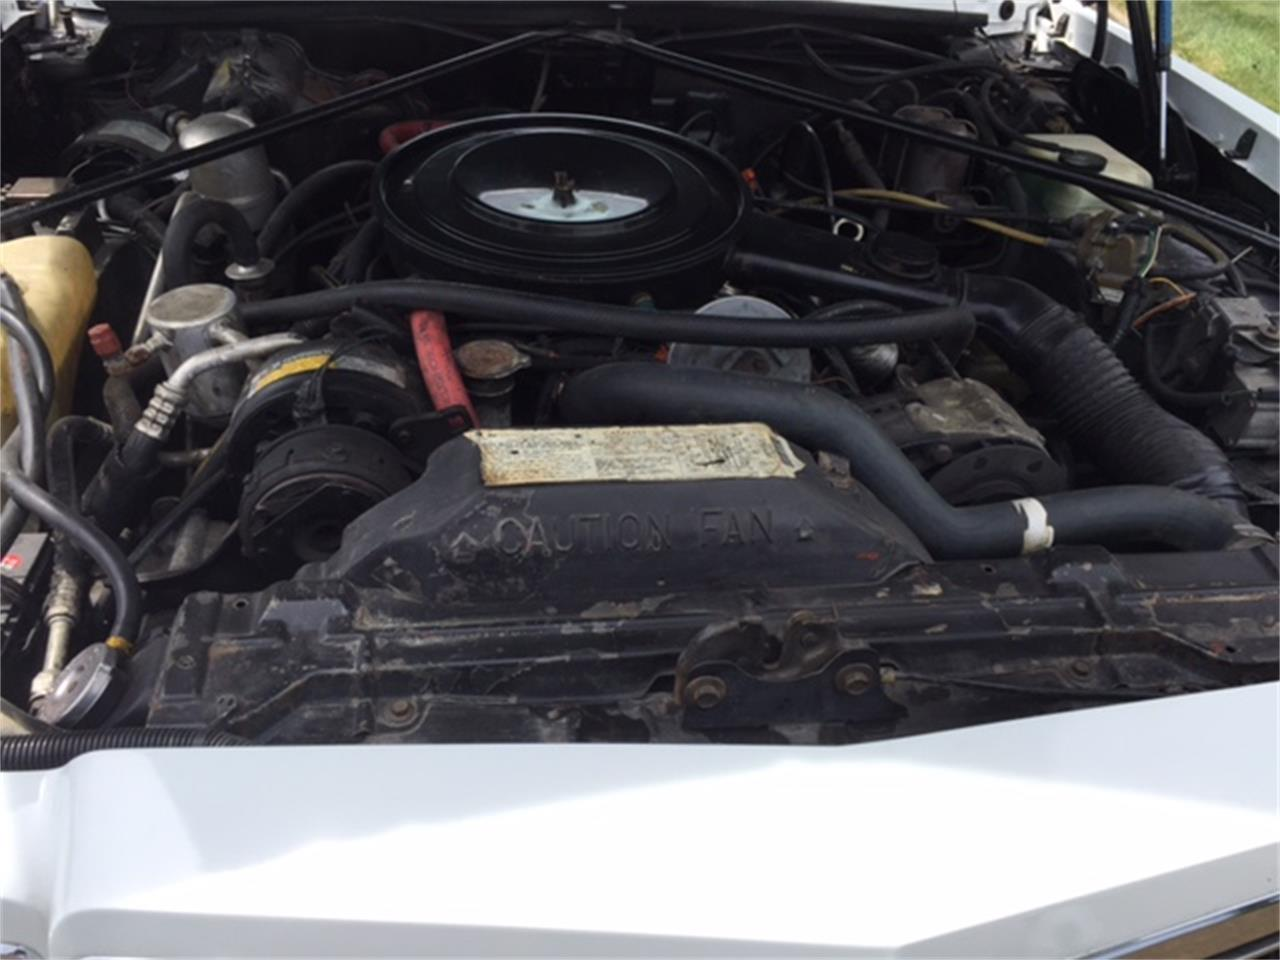 Large Picture of 1983 Buick Riviera located in Ohio Offered by a Private Seller - LHEX